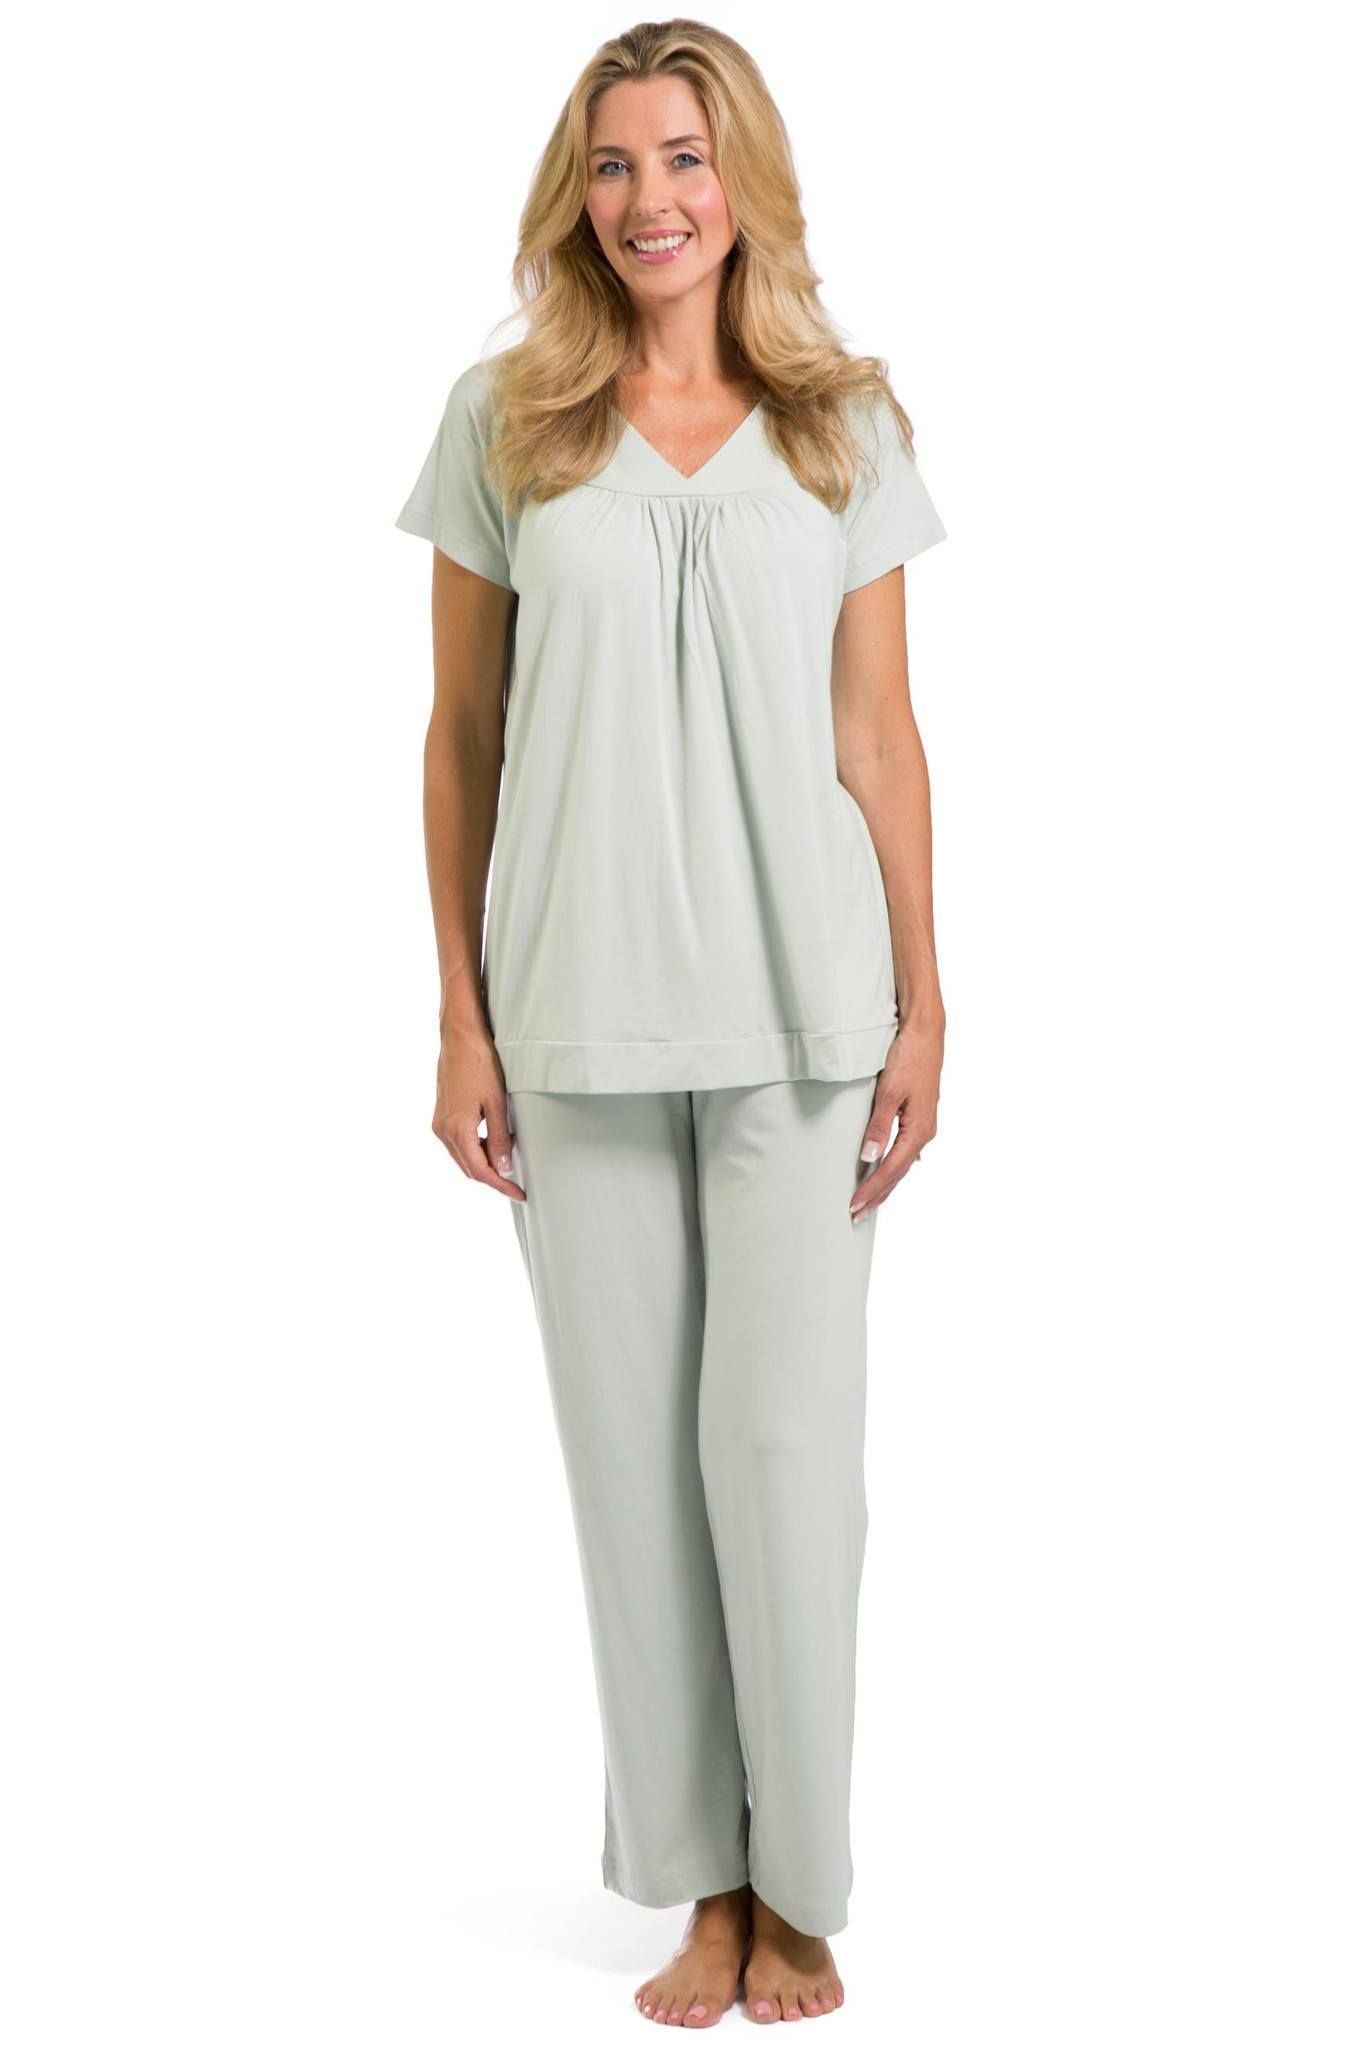 Find a great selection of pajamas for women at thrushop-9b4y6tny.ga Shop short pajamas, knit pajamas and more from the best brands. Free shipping and returns.